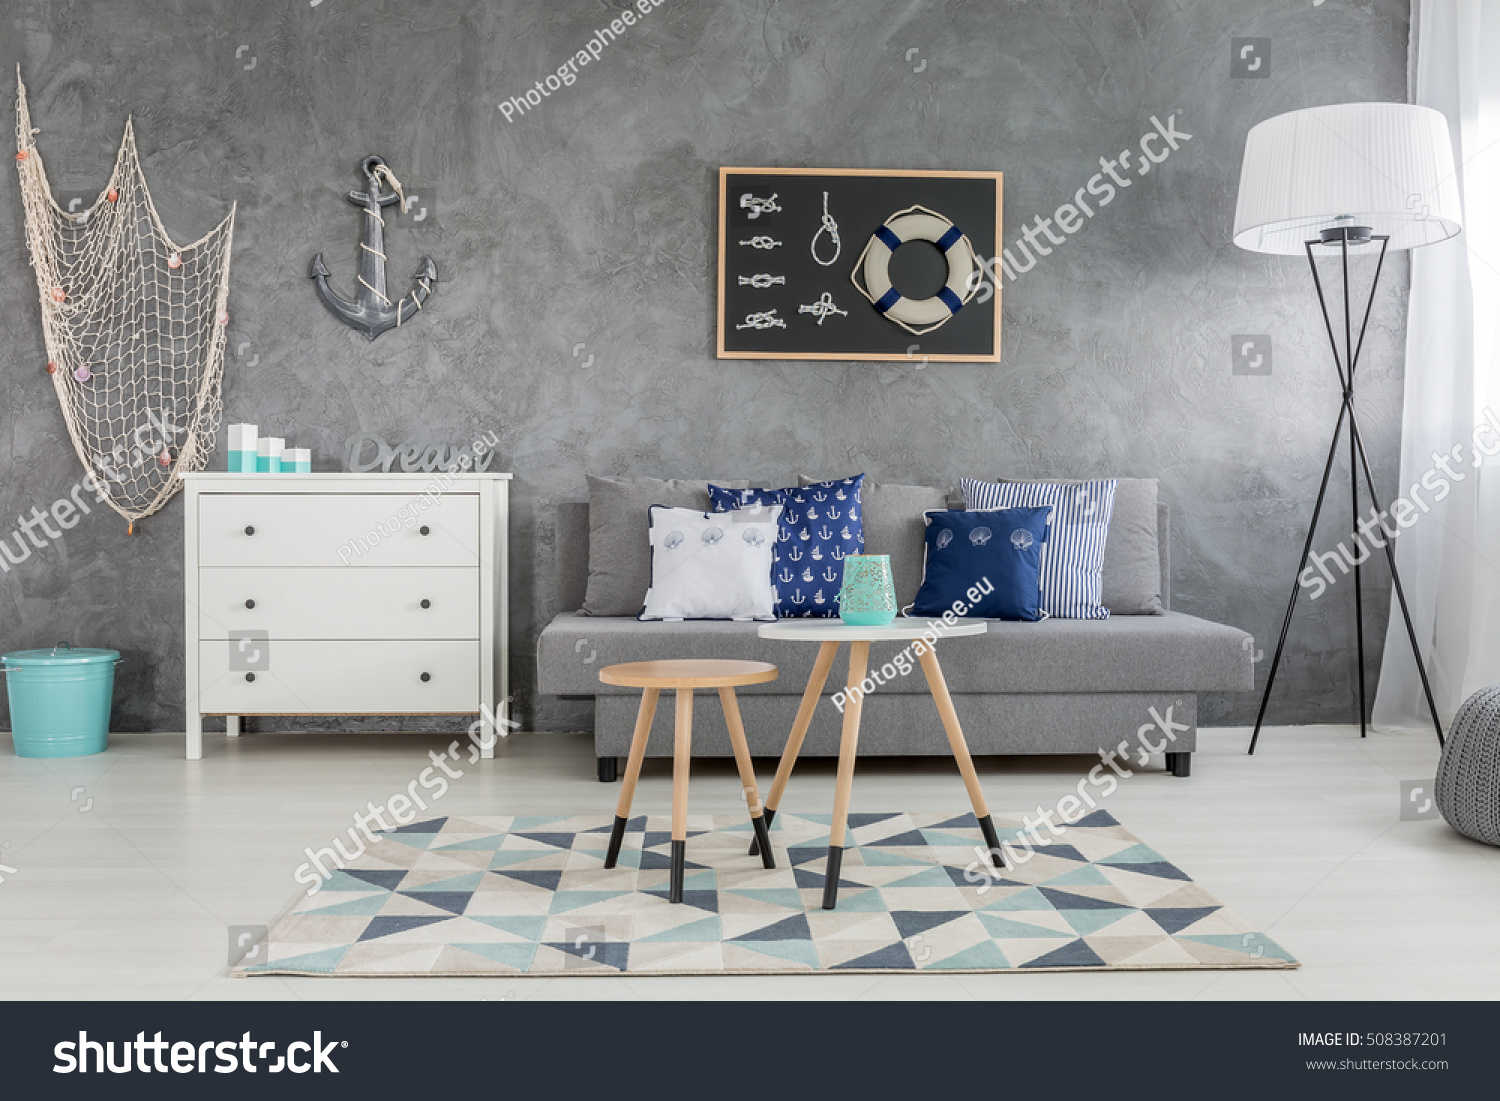 Modern Grey Living Room Nautical Decorations Stock Photo Edit Now 508387201